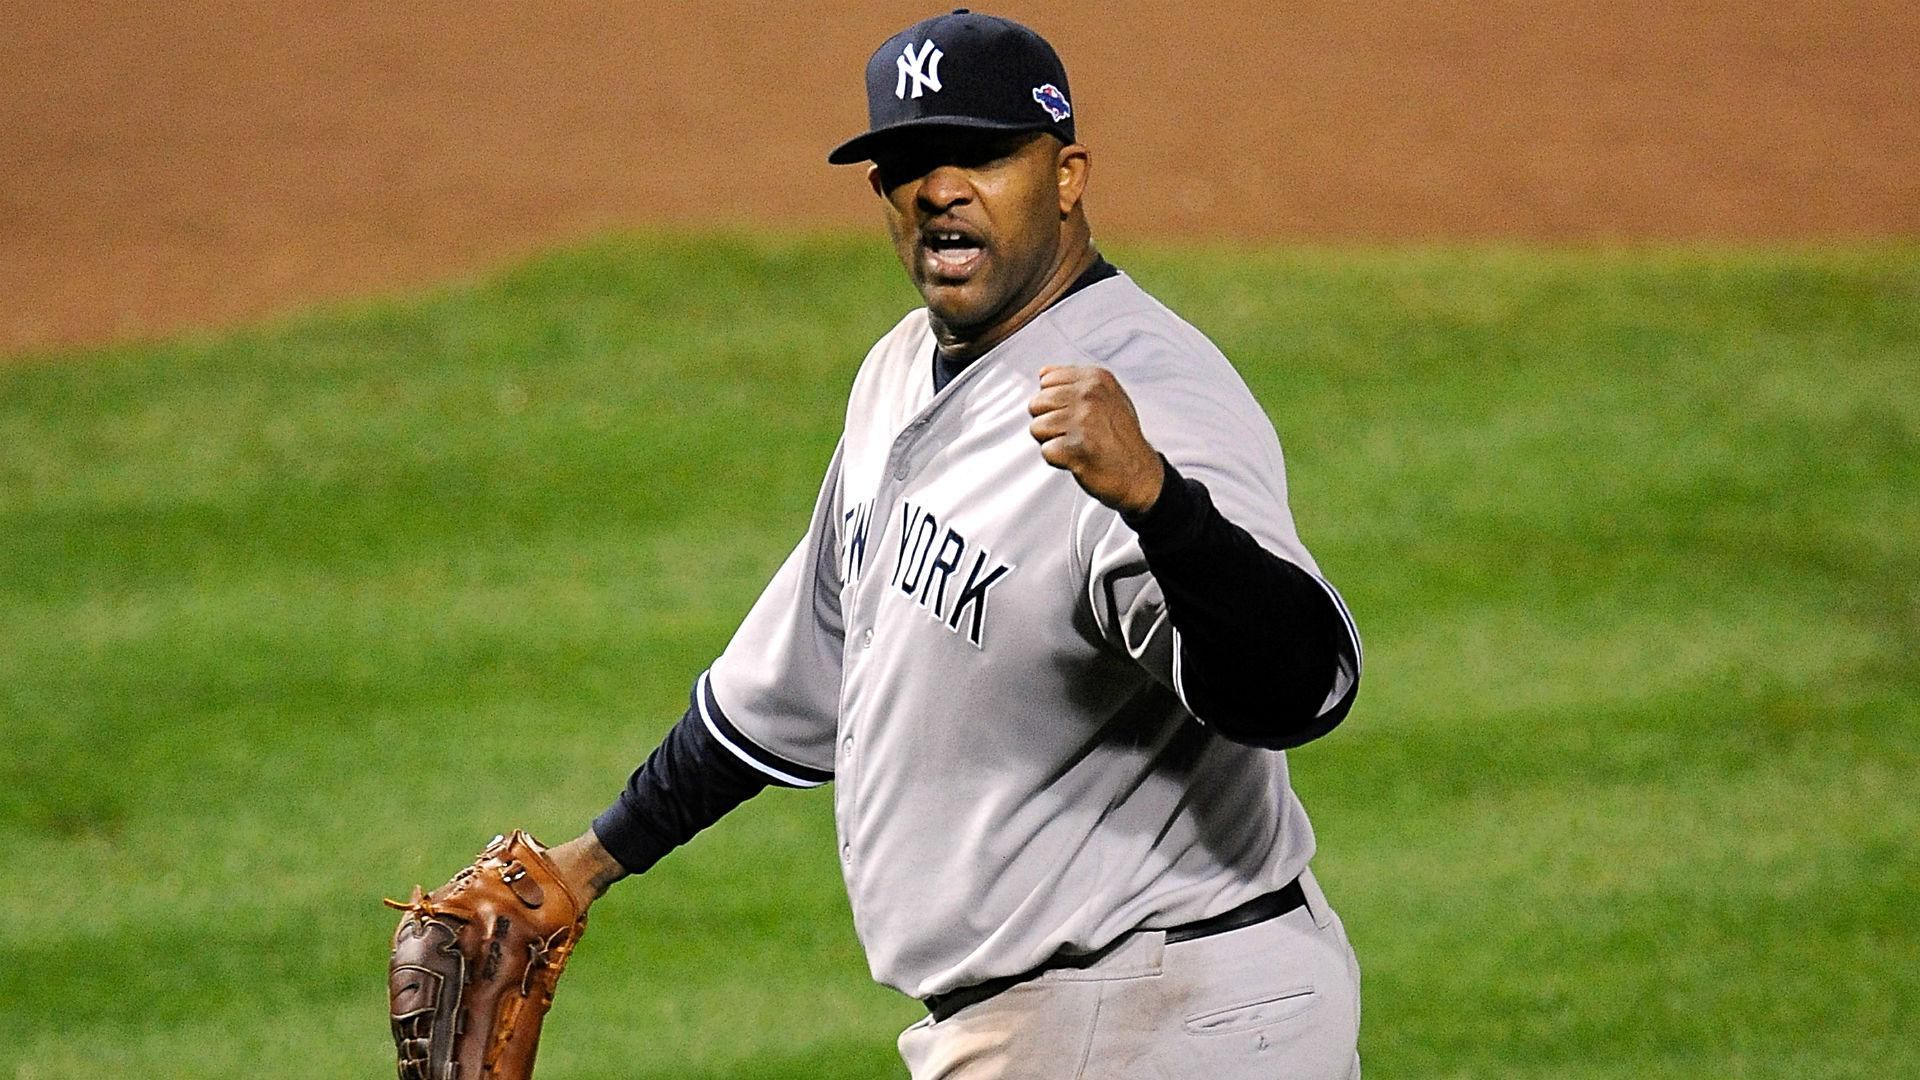 Wednesday's MLB rundown: Yankees, CC Sabathia snap out of skid with shutout of Orioles